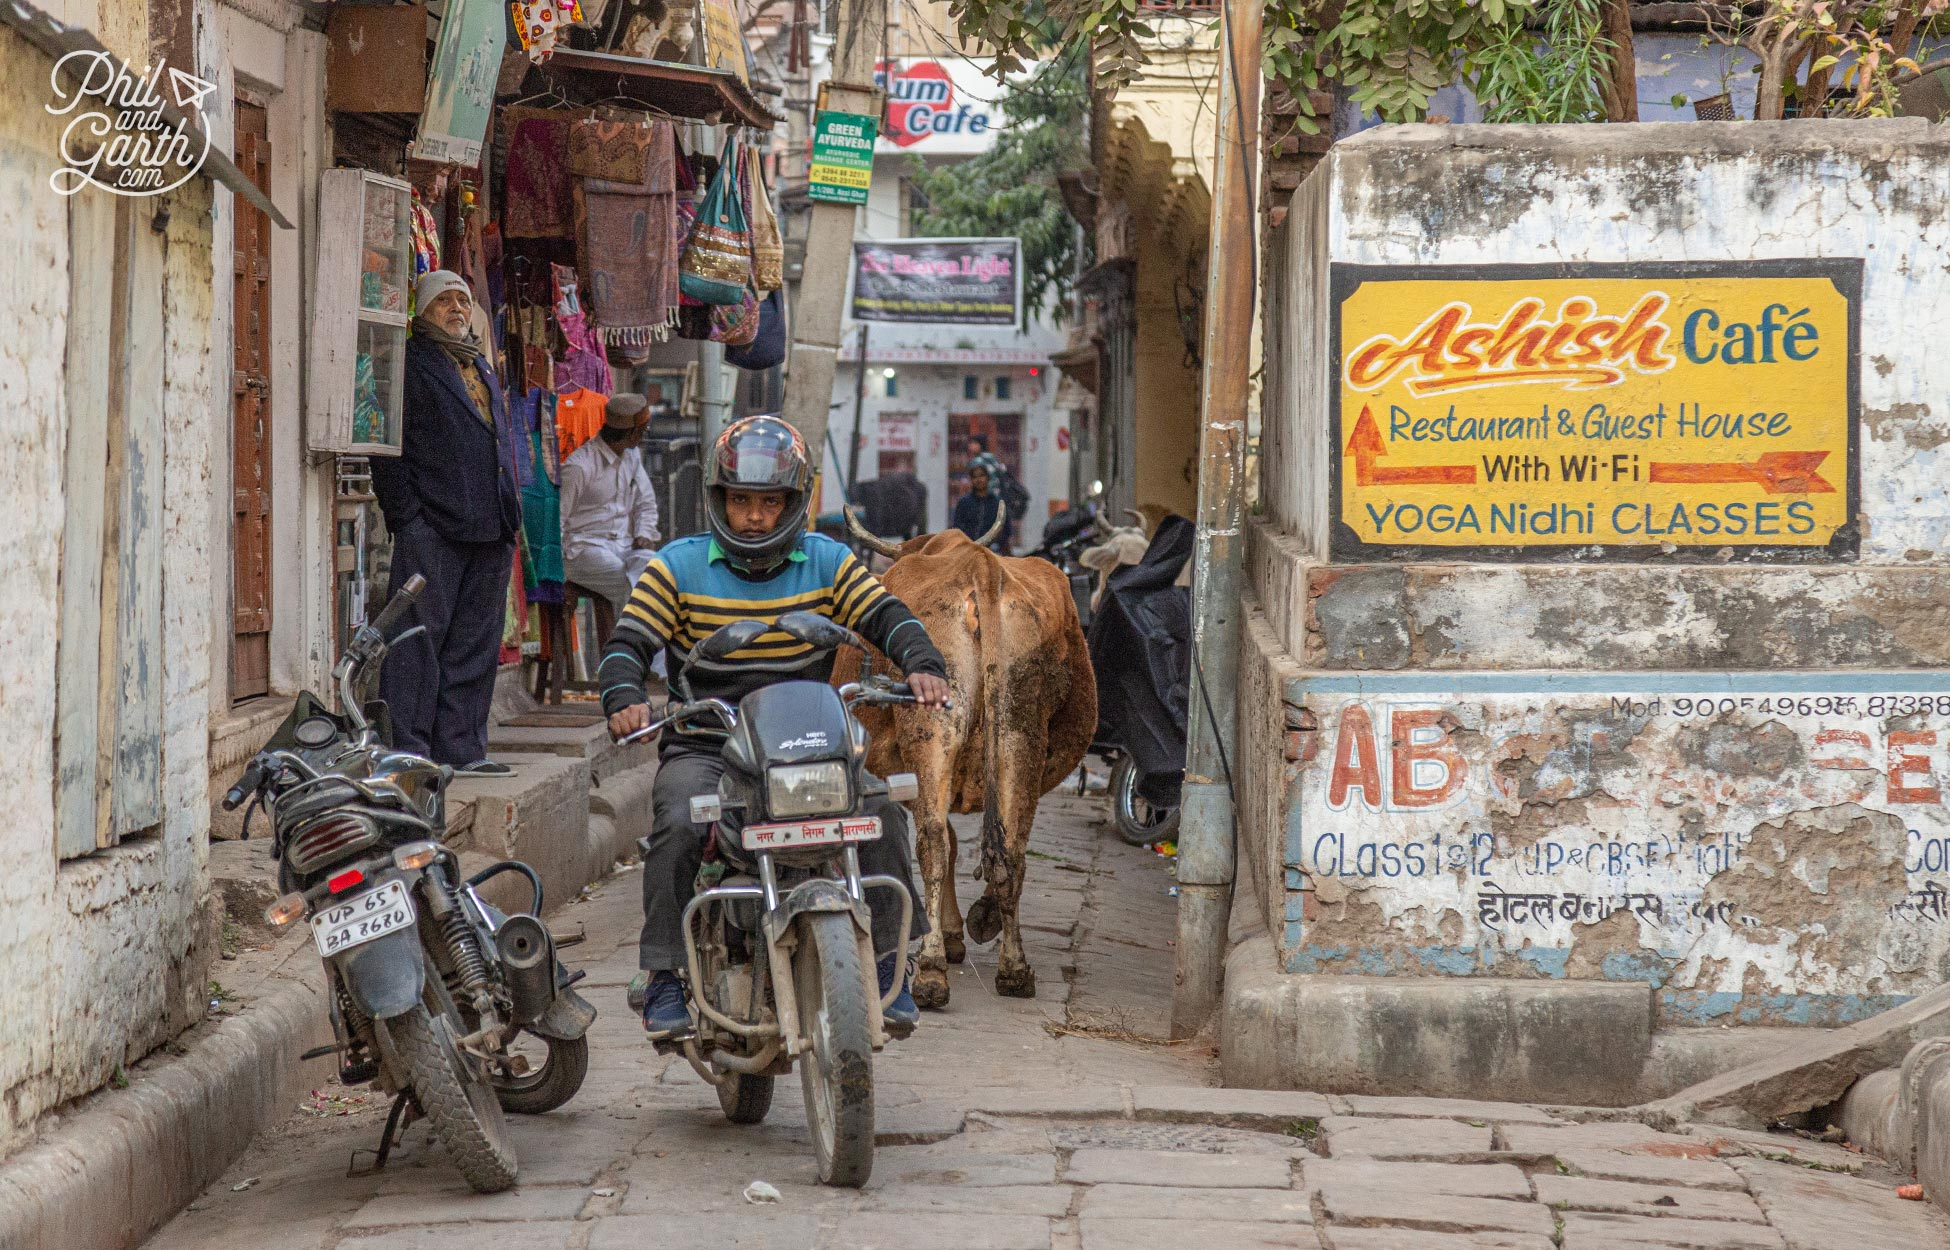 People, motorbikes and holy cows share some of these tiny streets